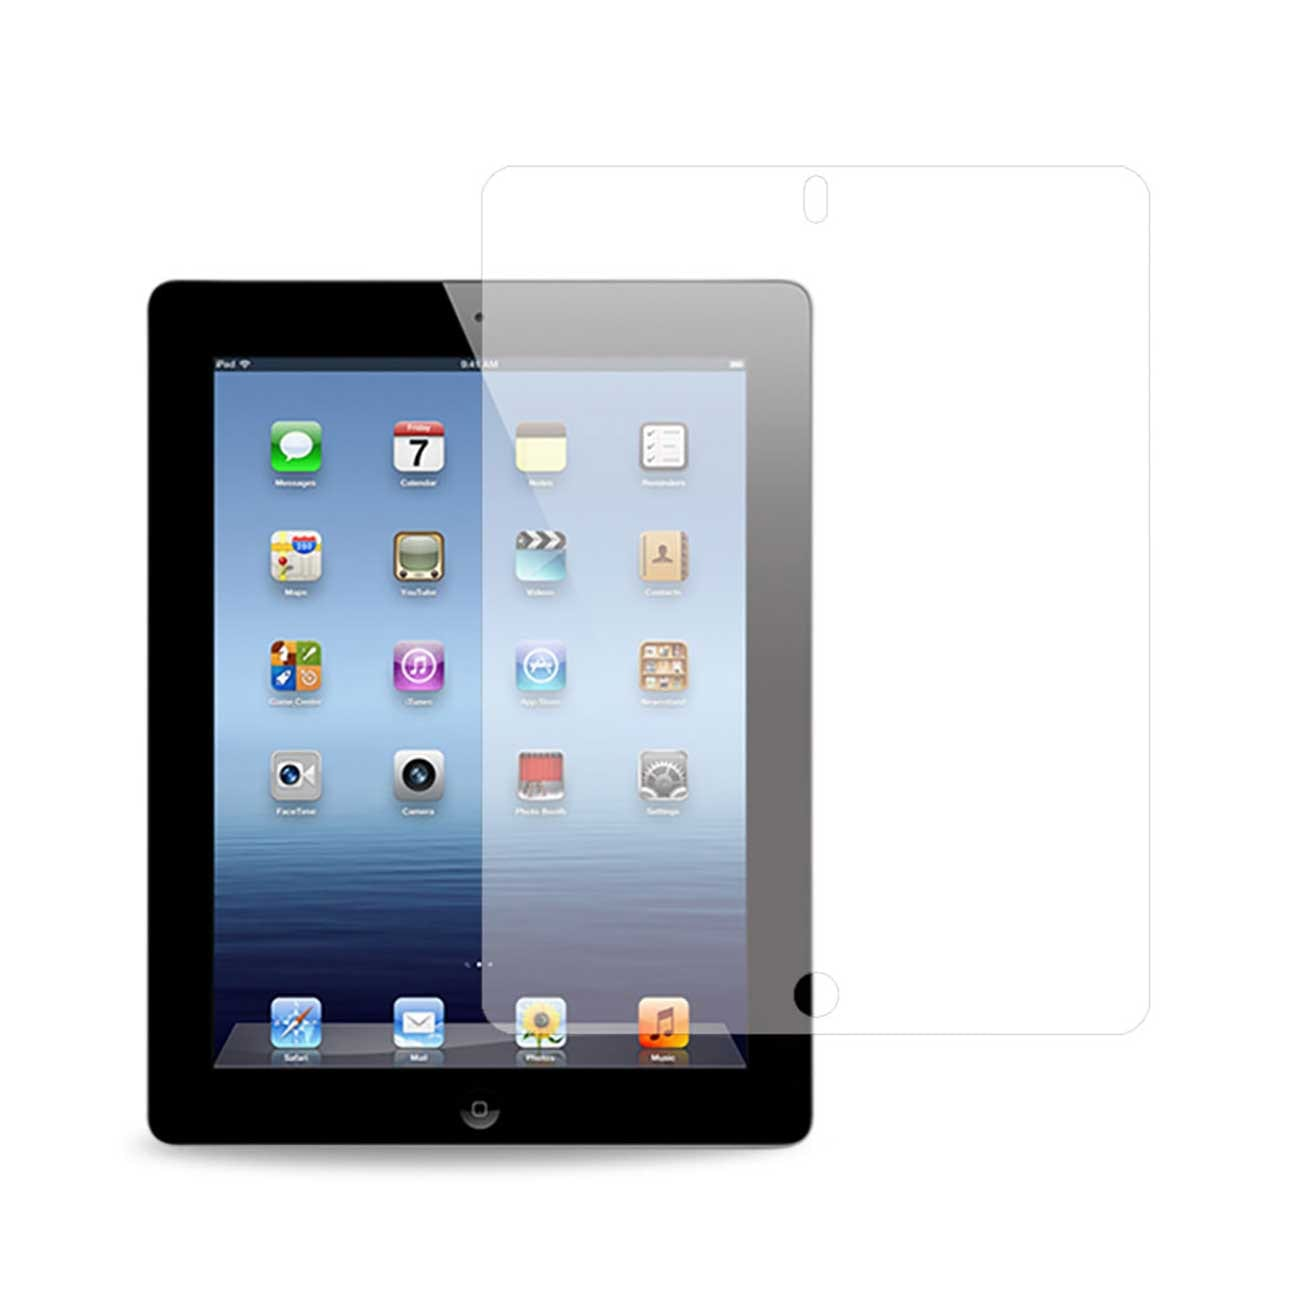 IPAD 3 CLEAR SCREEN PROTECTOR IN CLEAR